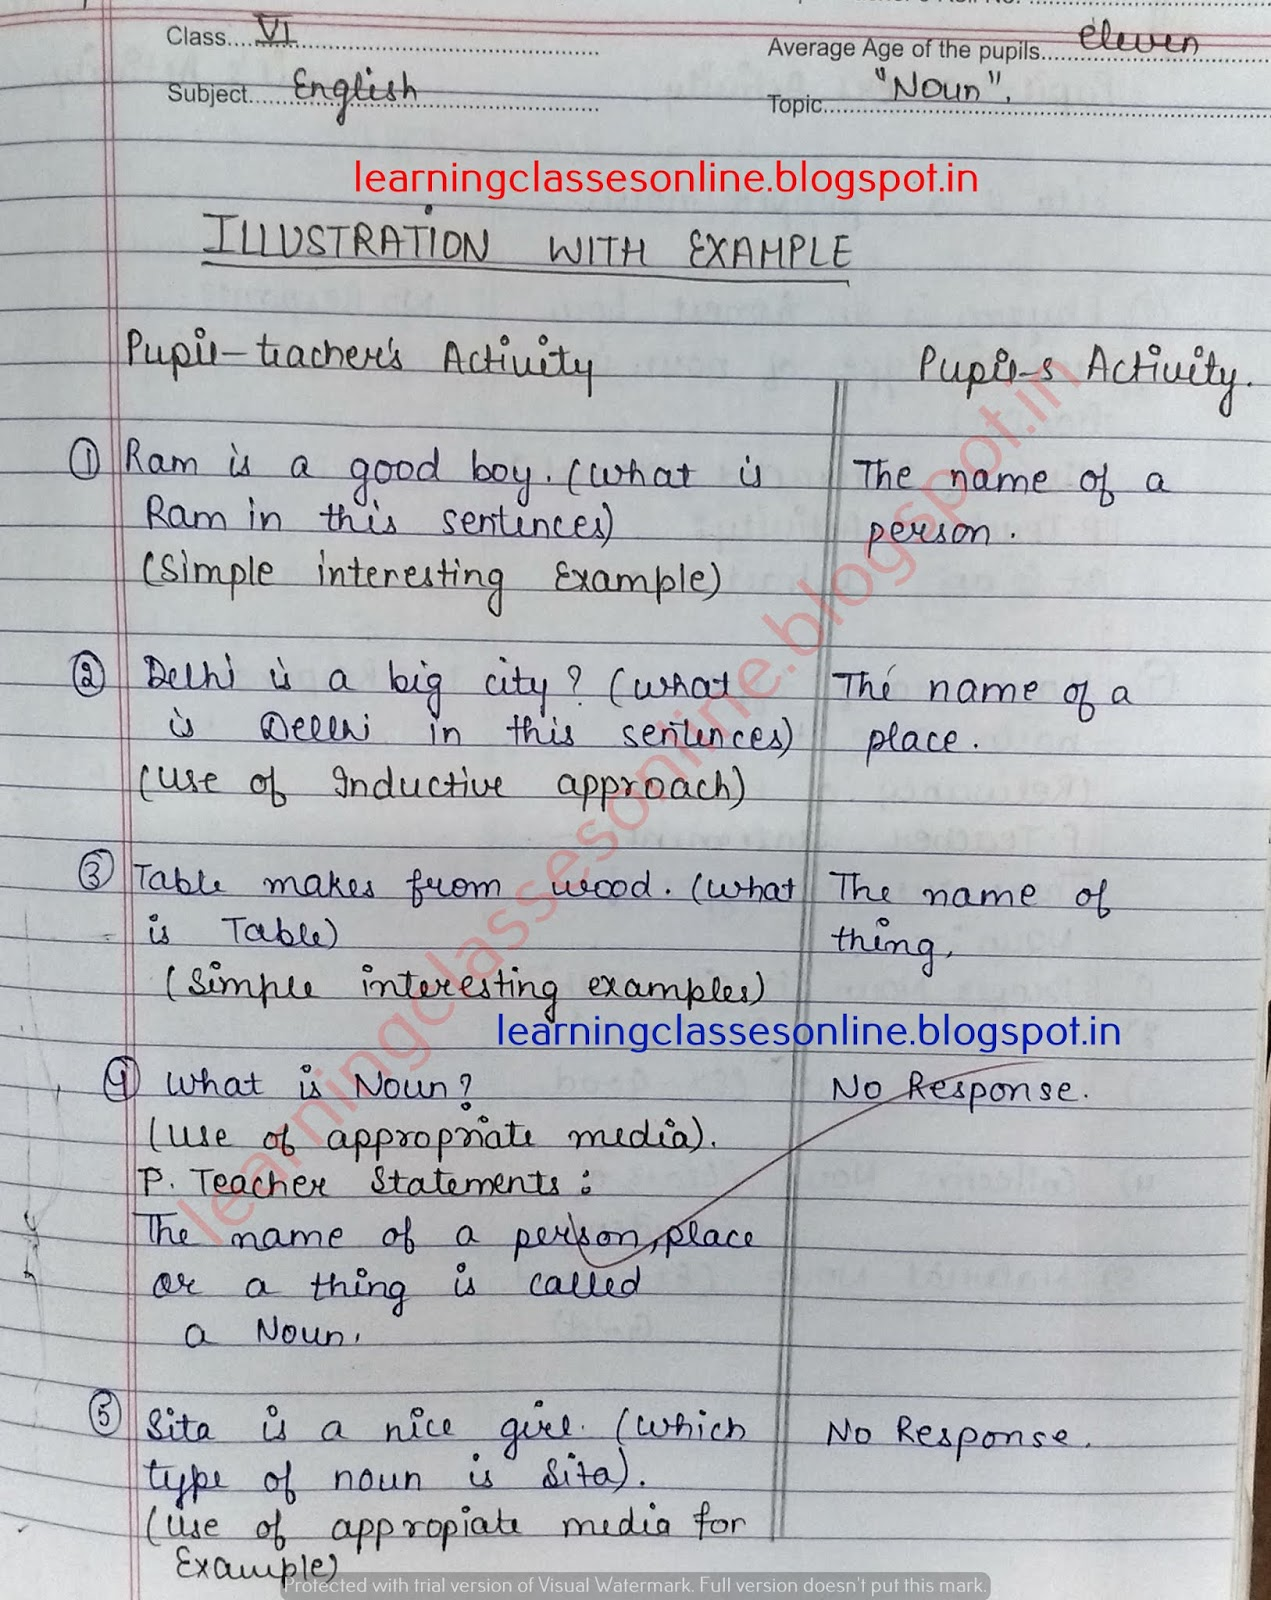 Microteaching Lesson Plan For English Grammar On Noun Illustration With Example Skill